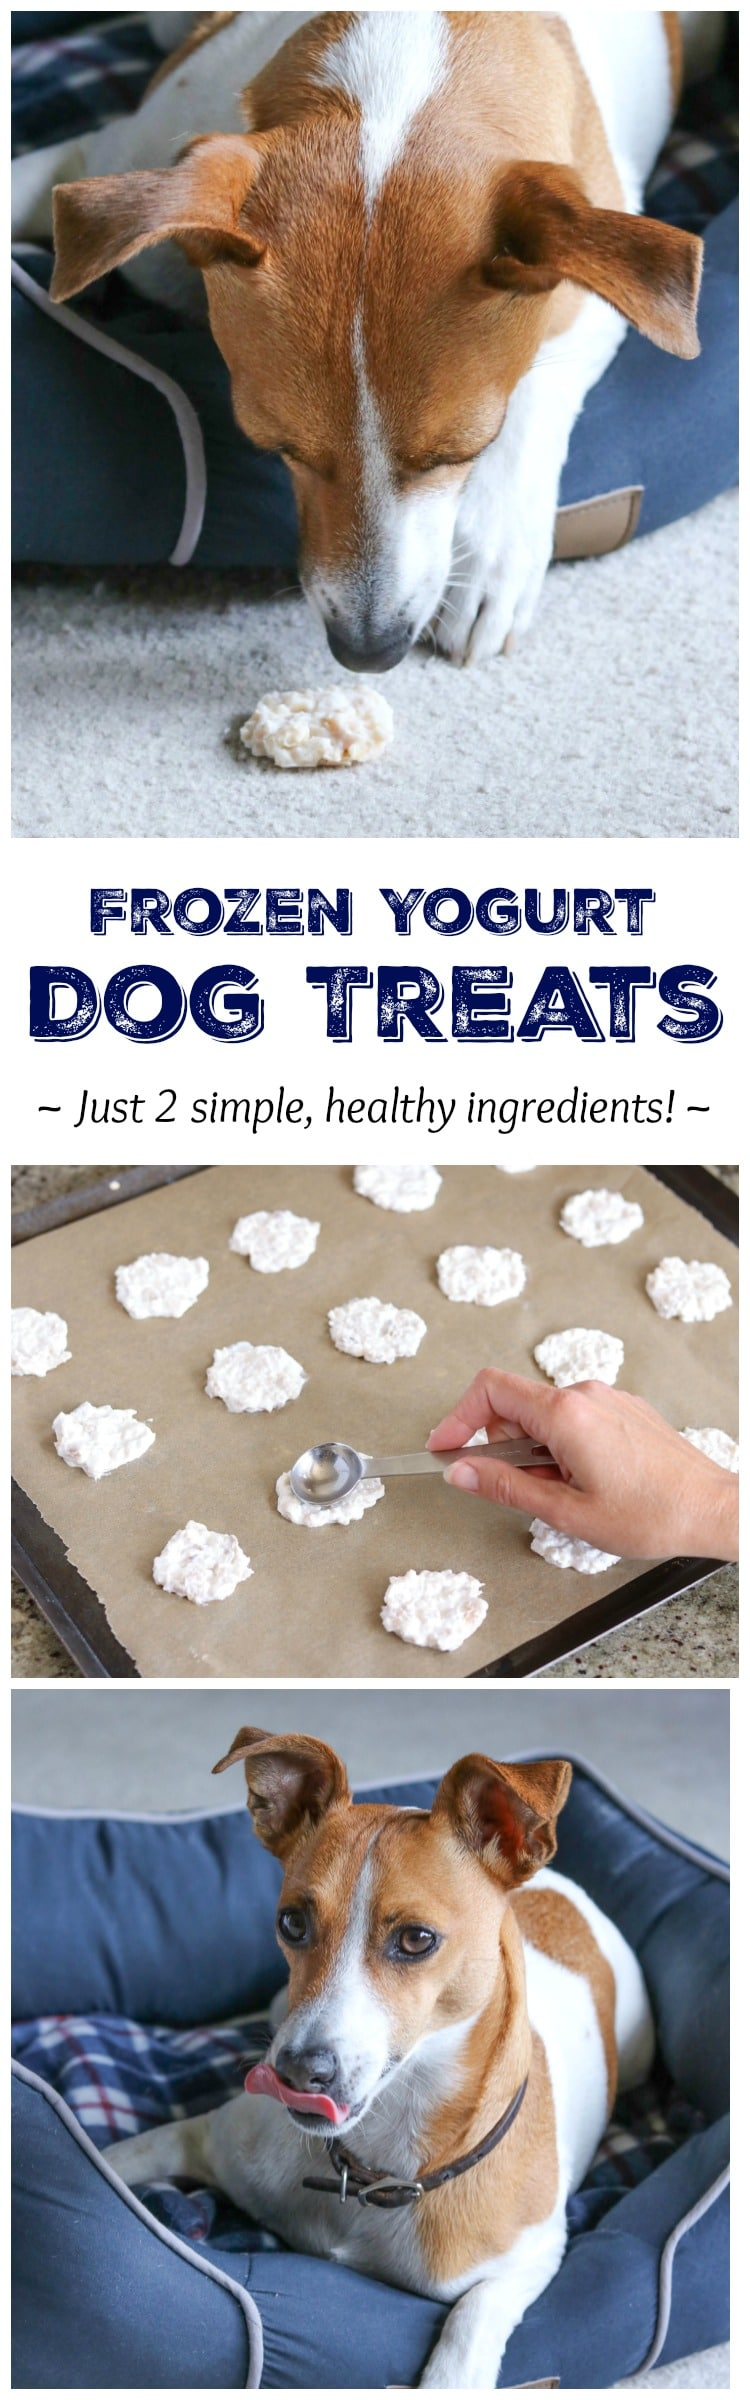 This super-easy Frozen Yogurt Homemade Dog Treat Recipe has just 2 simple ingredients dogs love – a total snap to make! Bonus: it's the perfect way to use up leftover chicken! | www.TwoHealthyKitchens.com